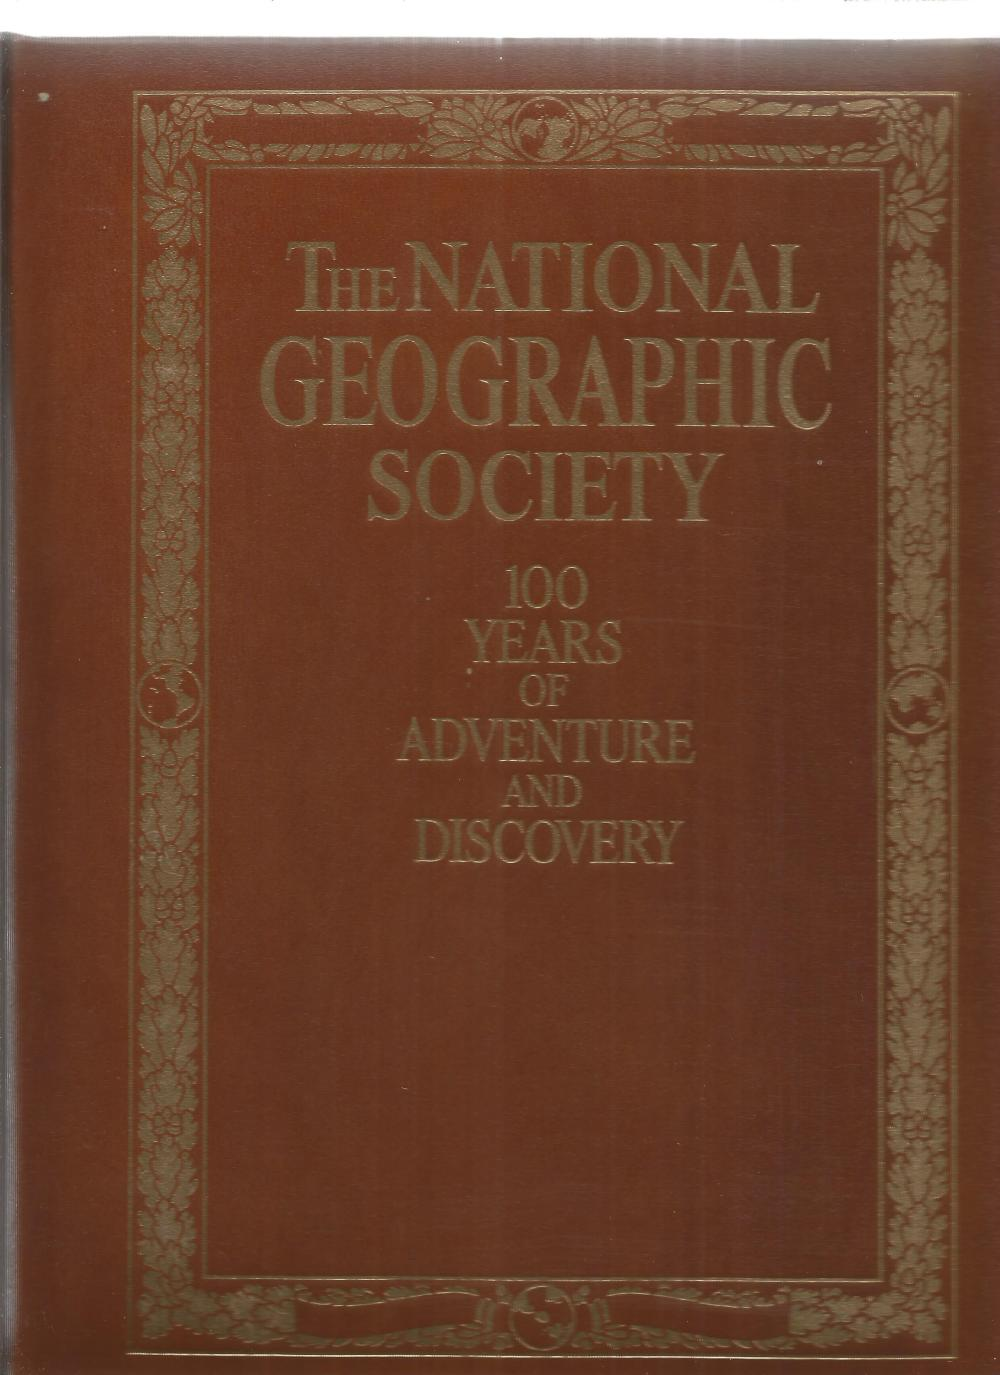 The National Geographic Society 100 Years of Adventure and Discovery. Unsigned large hardback book